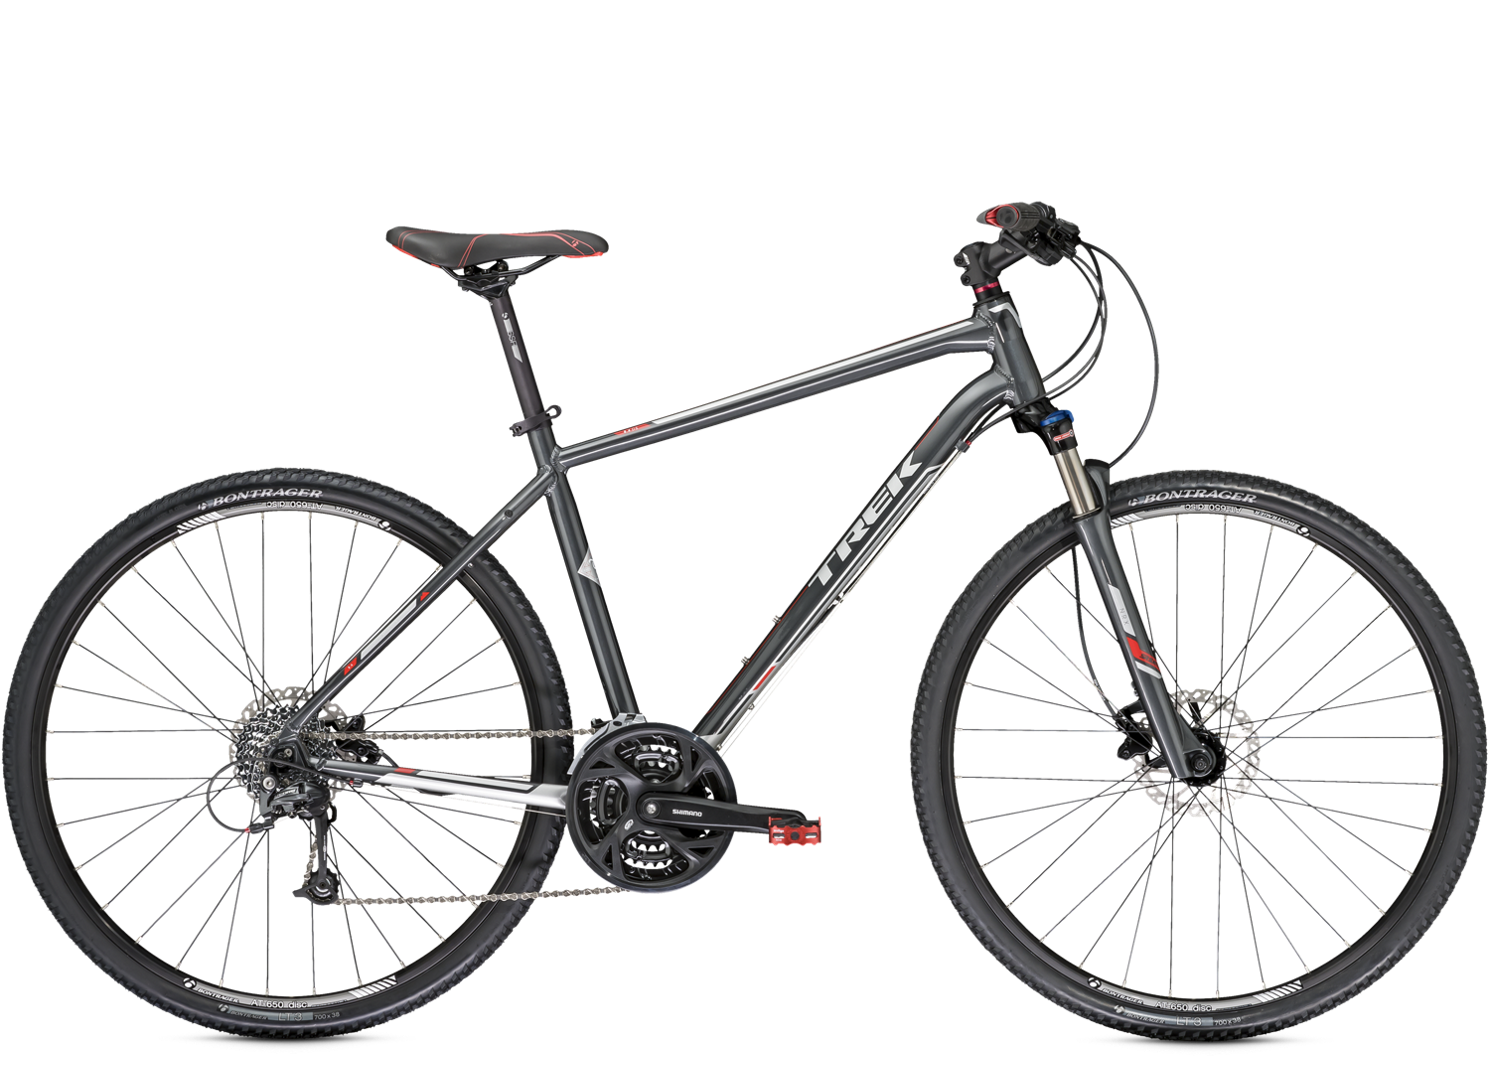 7dd95150614 Bumsteads Road and Mountain Bikes: [Review] The 2014 Trek 8.4 DS Can ...